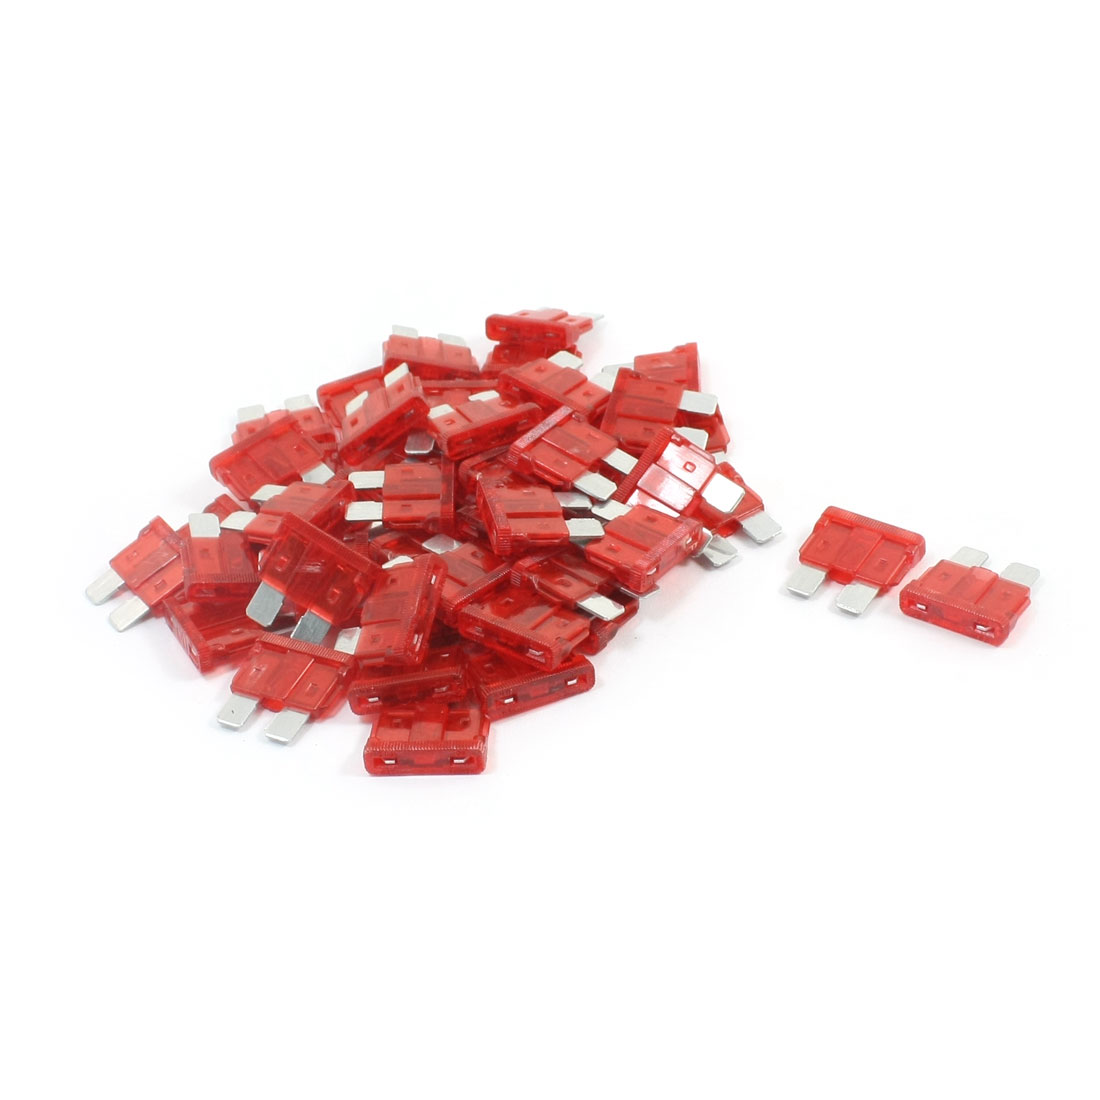 50 Pcs 32V 5A Auto Car Boat Motorcycle Large Size Blade ATC Fuse Red